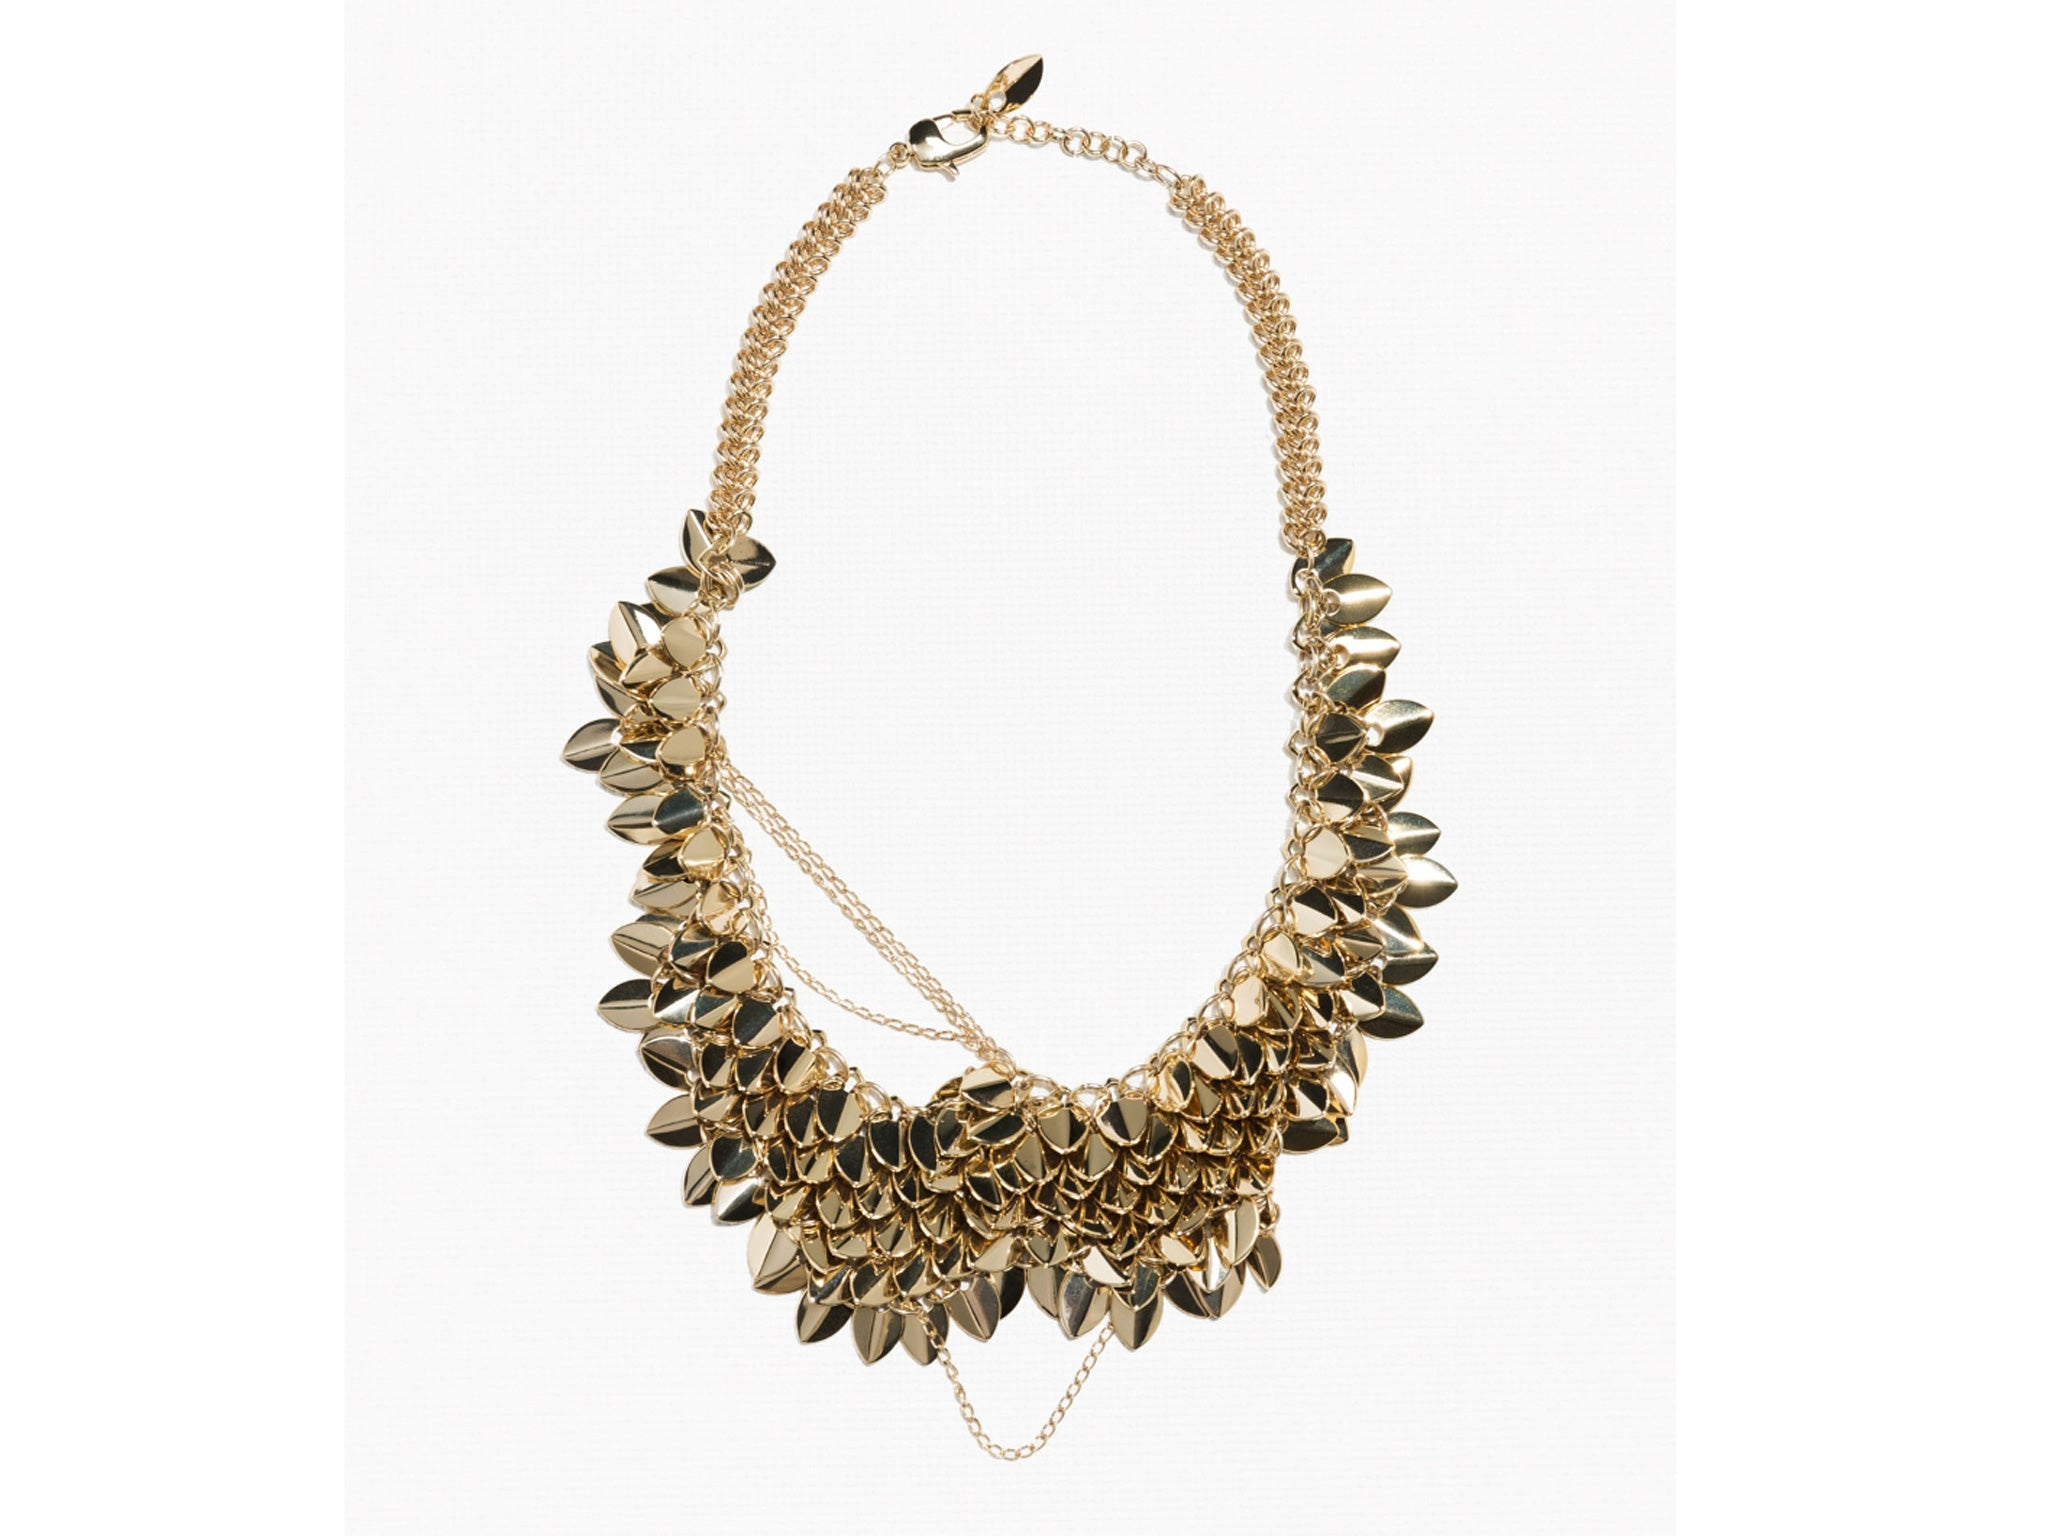 70c441b65f059 River Gem Gold and White Statement Necklace